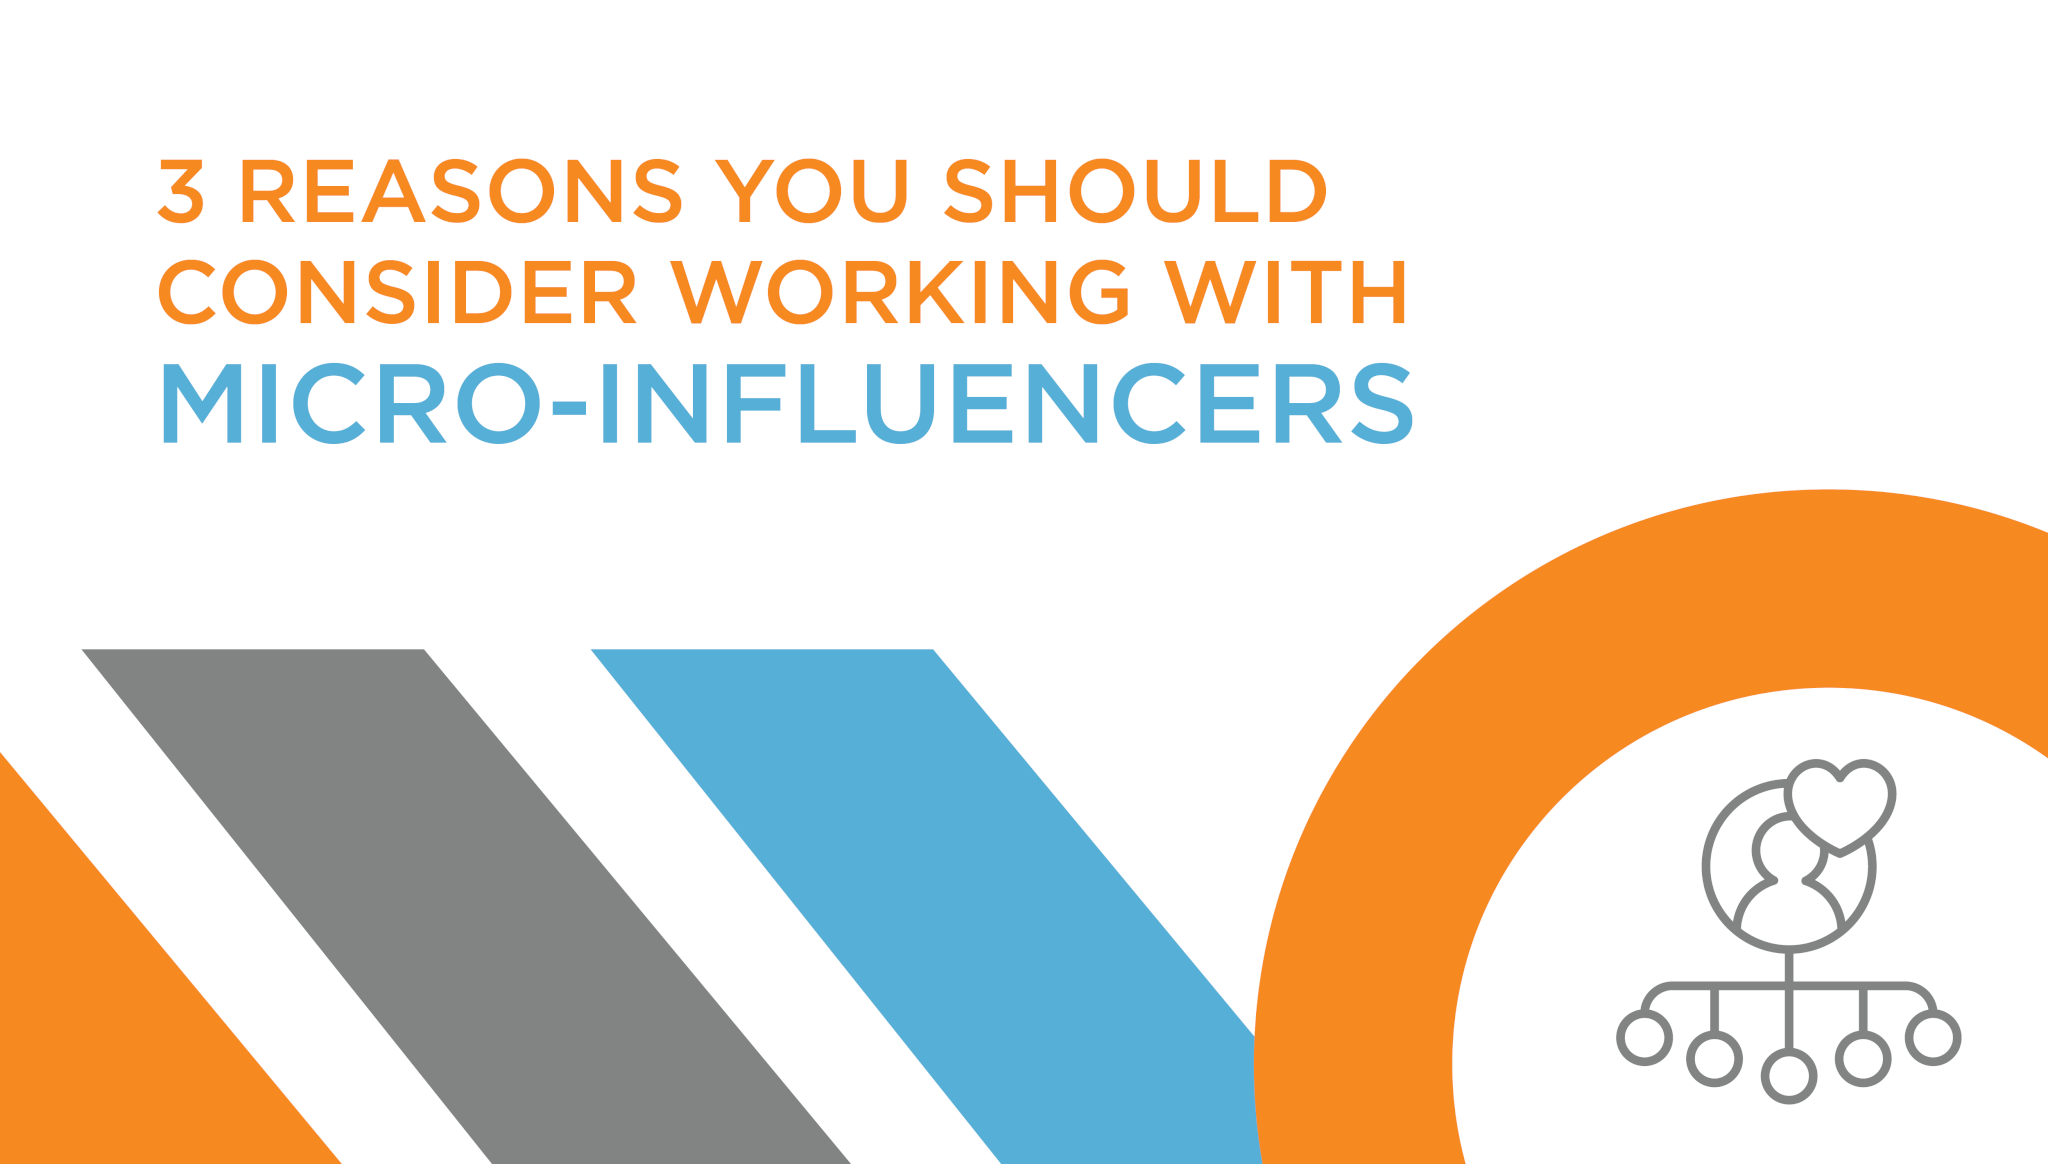 3 reasons you should consider working with micro-influencers